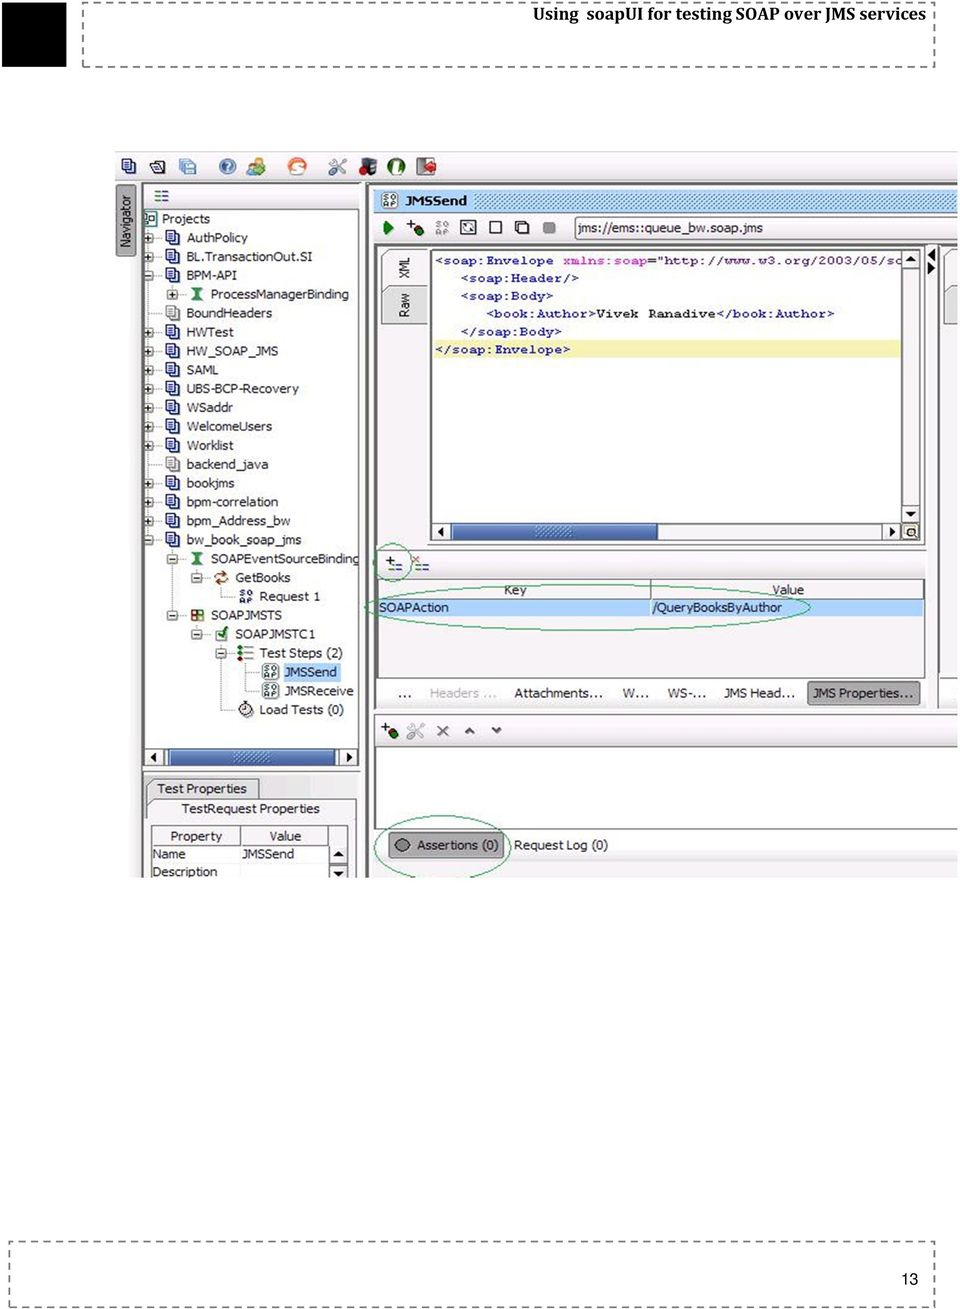 Sop U  SOAP over JMS with  Configuring soapui to test TIBCO SOAP